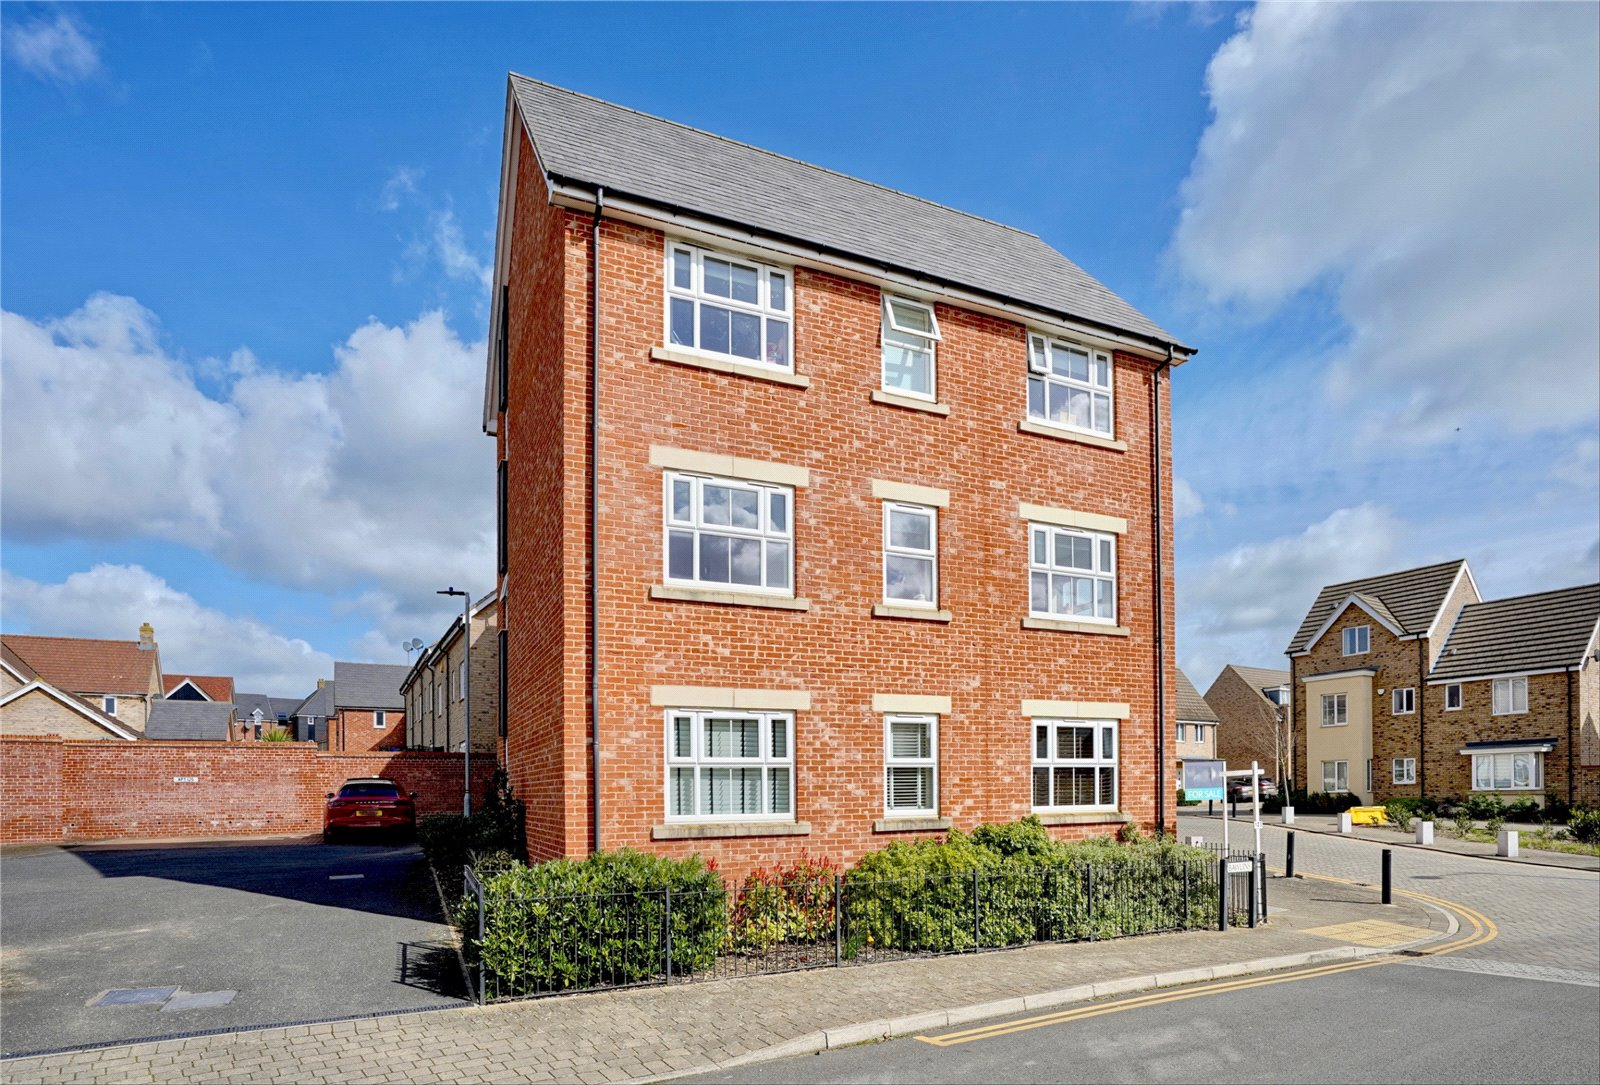 2 bed apartment for sale in St. Neots, PE19 6GN, PE19